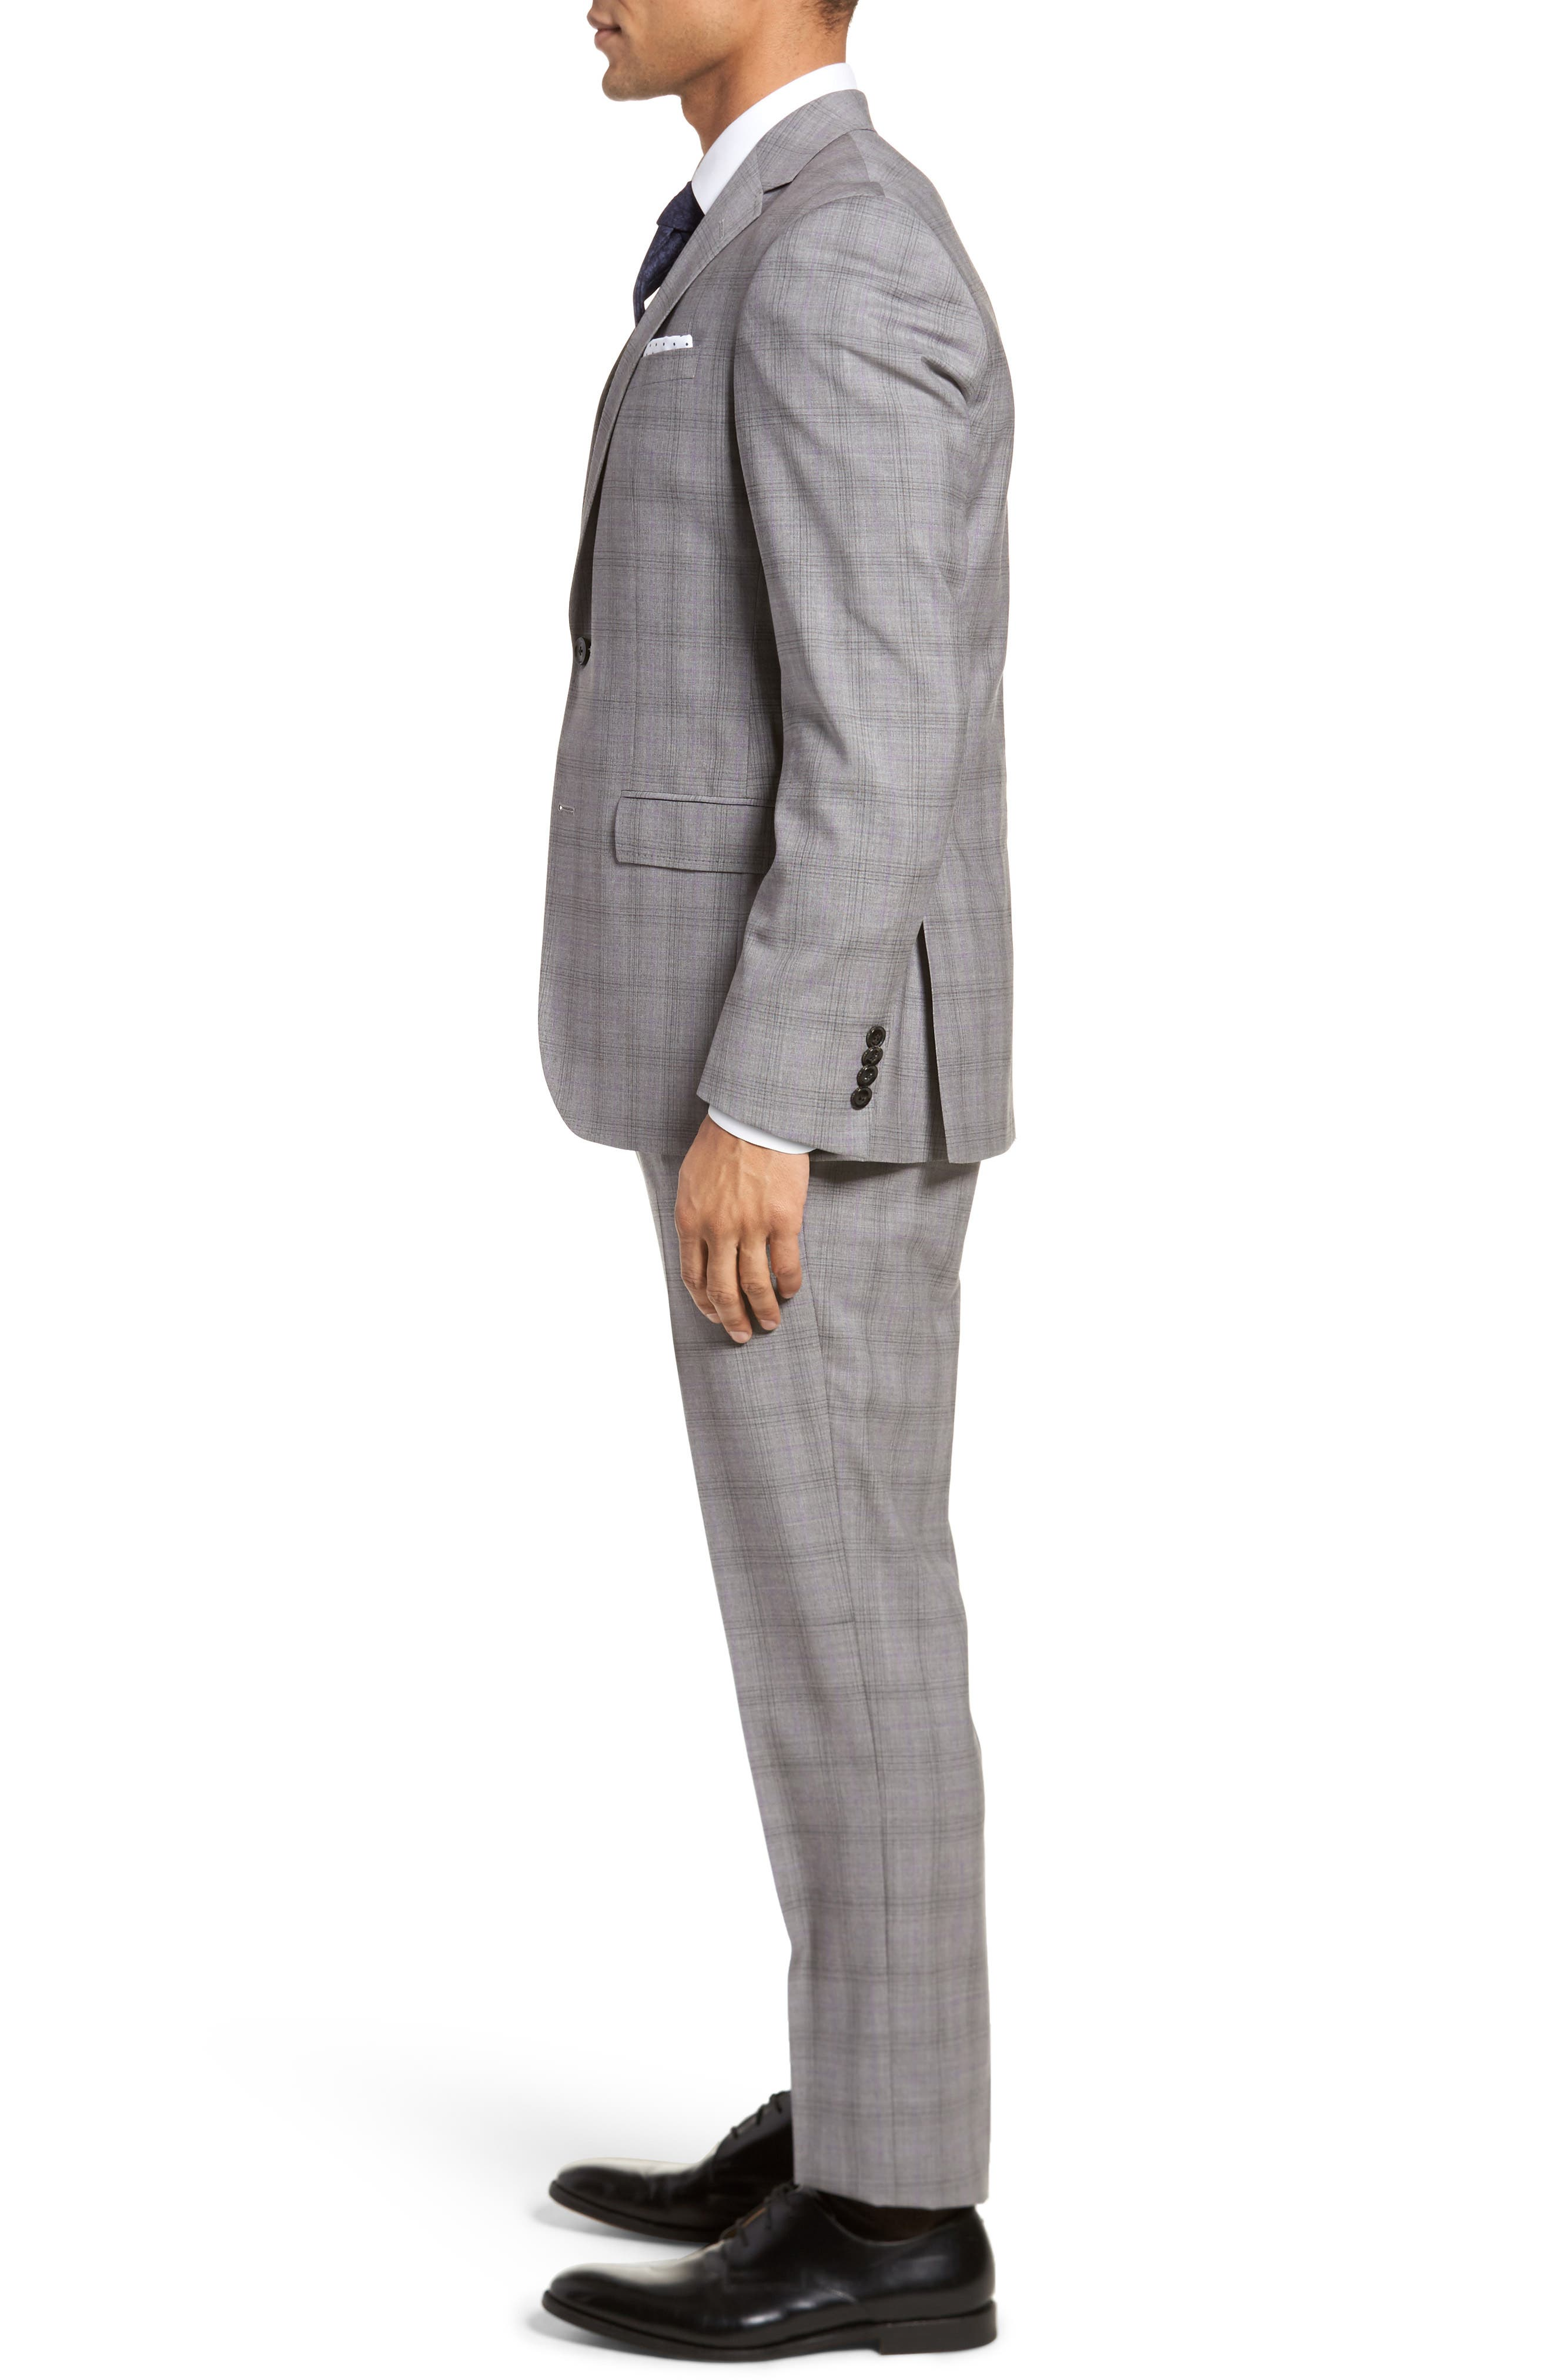 Jay Trim Fit Plaid Wool Suit,                             Alternate thumbnail 3, color,                             Light Grey